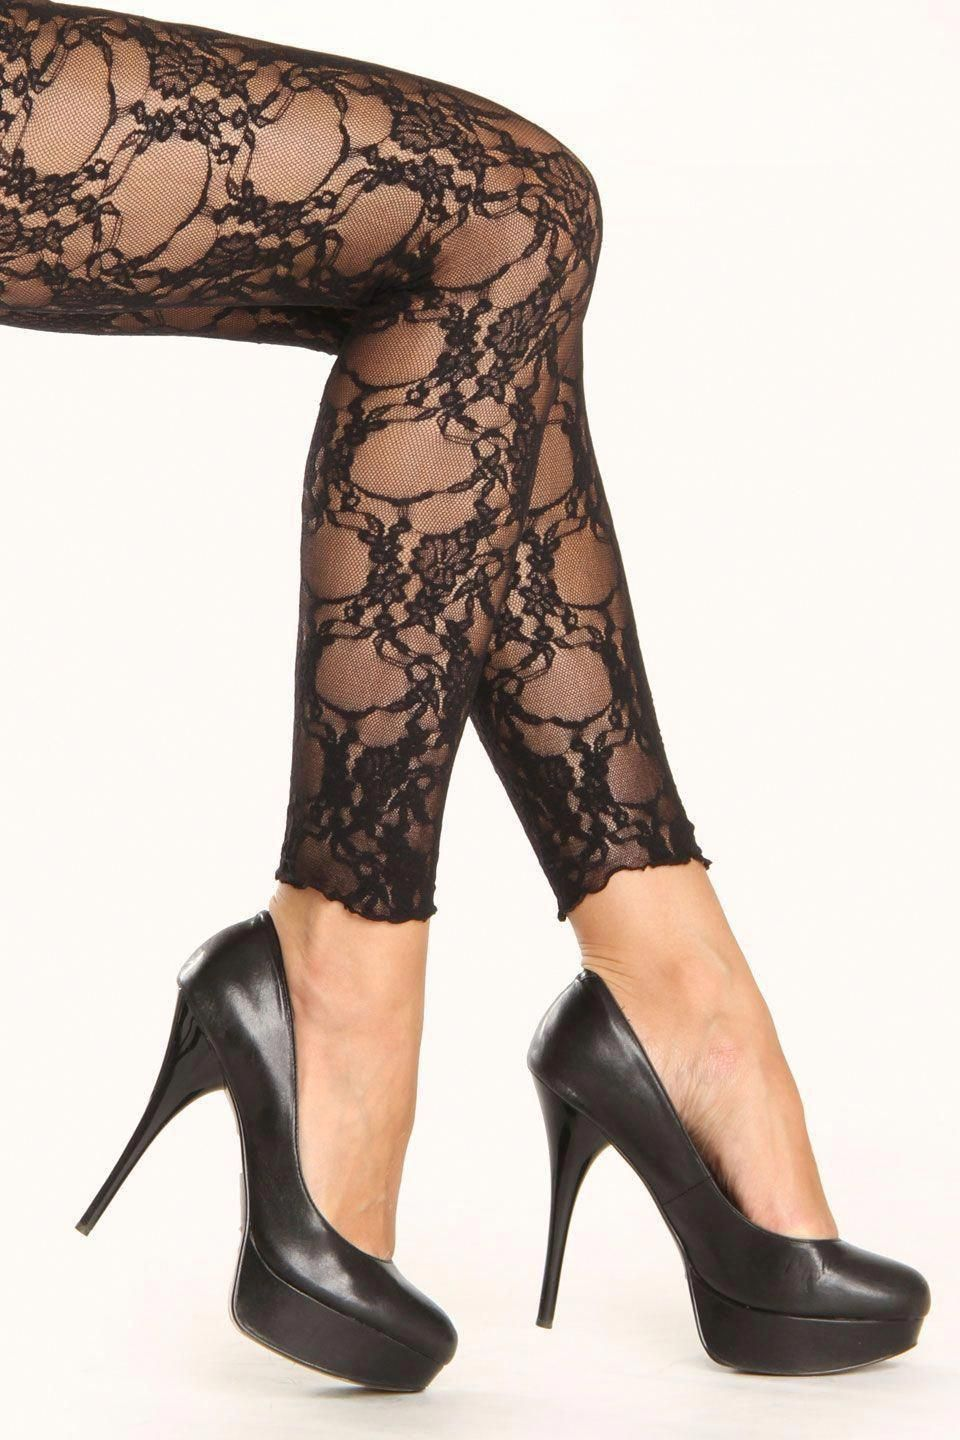 239264095cf25 Lace Tights ... would love them with my high heel boots ...